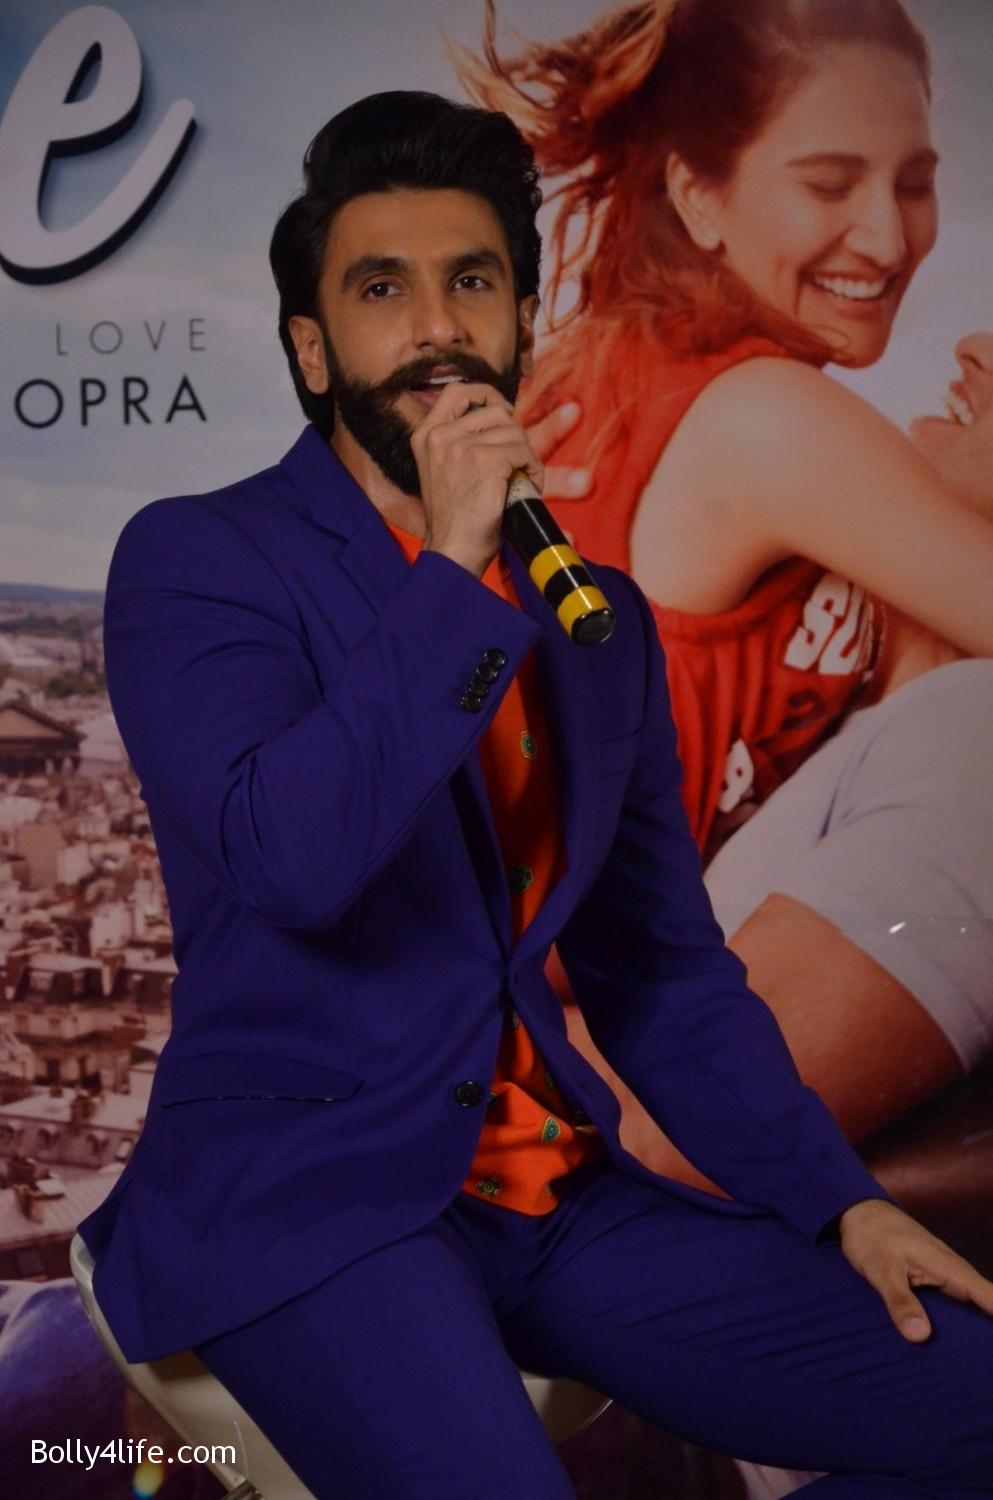 Ranveer-Singh-and-Vaani-Kapoor-during-the-song-launch-You-And-Me-from-film-Befikre-20.jpg